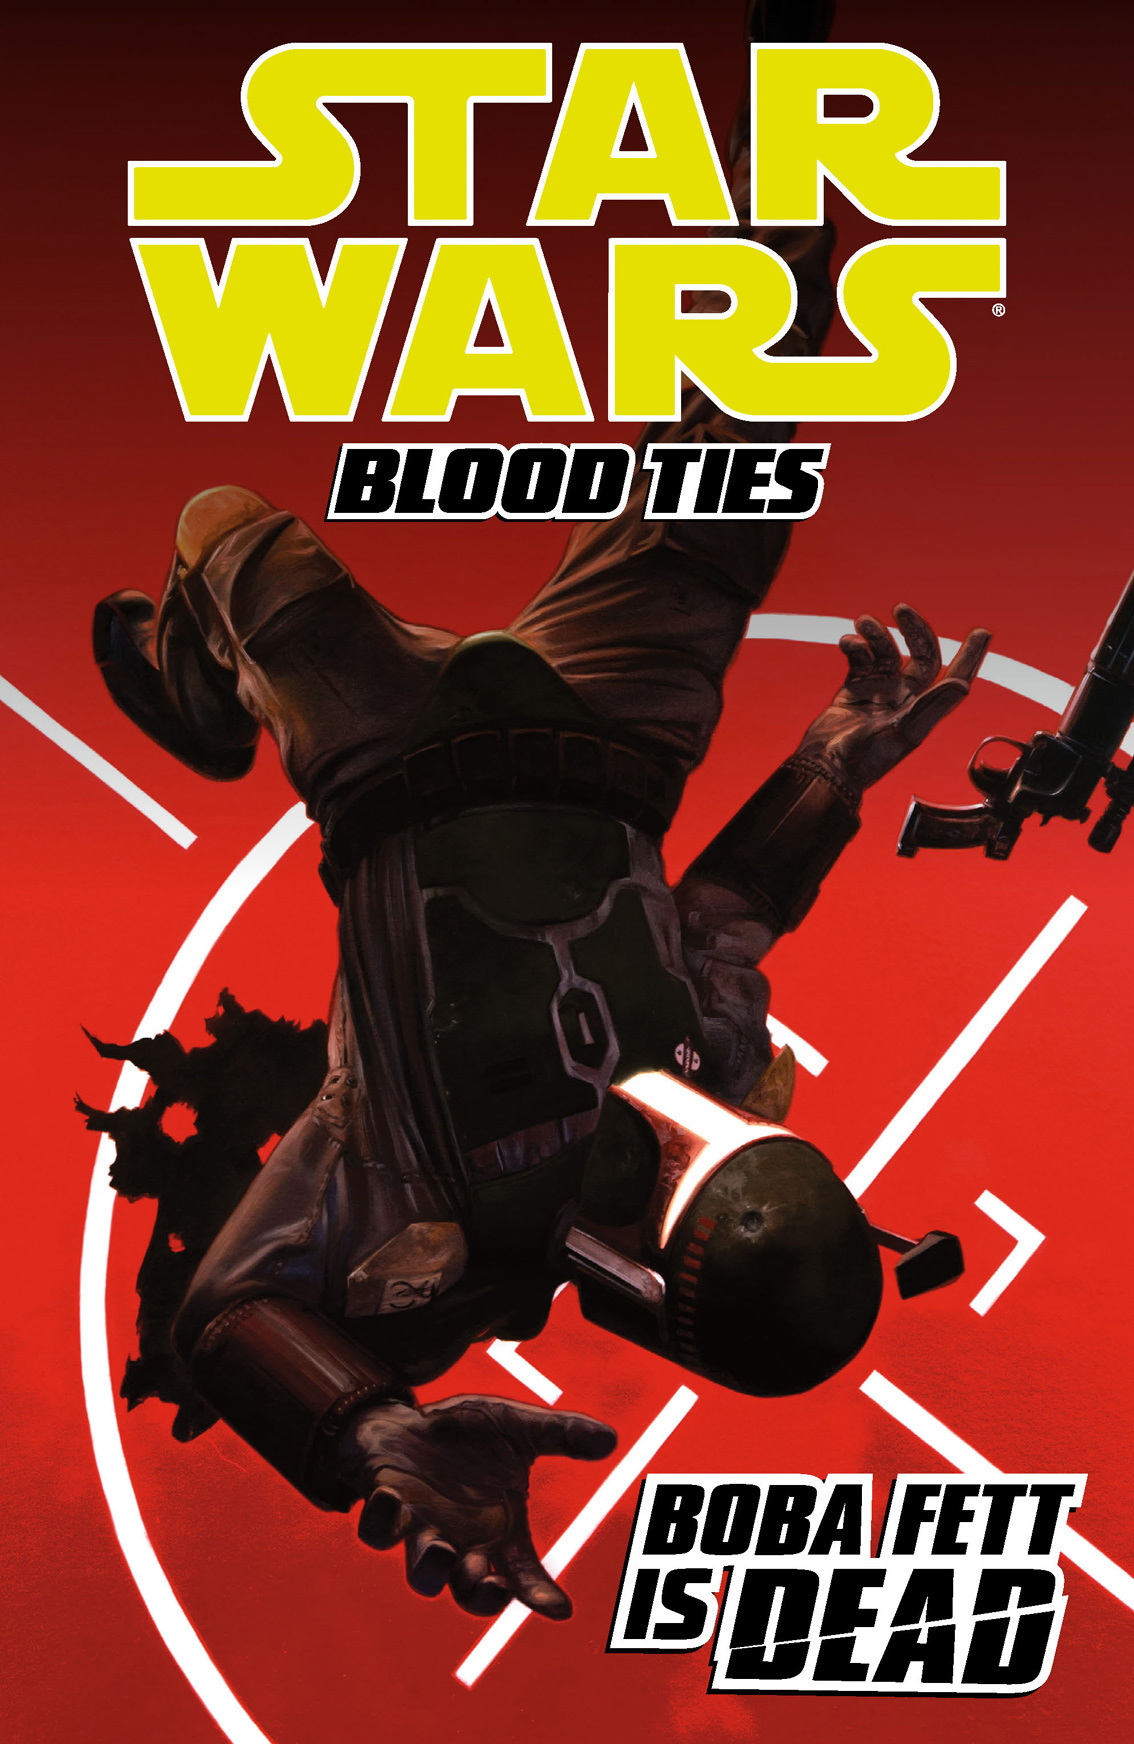 Star Wars: Blood Ties Volume 2Boba Fett is Dead By: Tom Taylor,Chris Scalf,David Palumbo